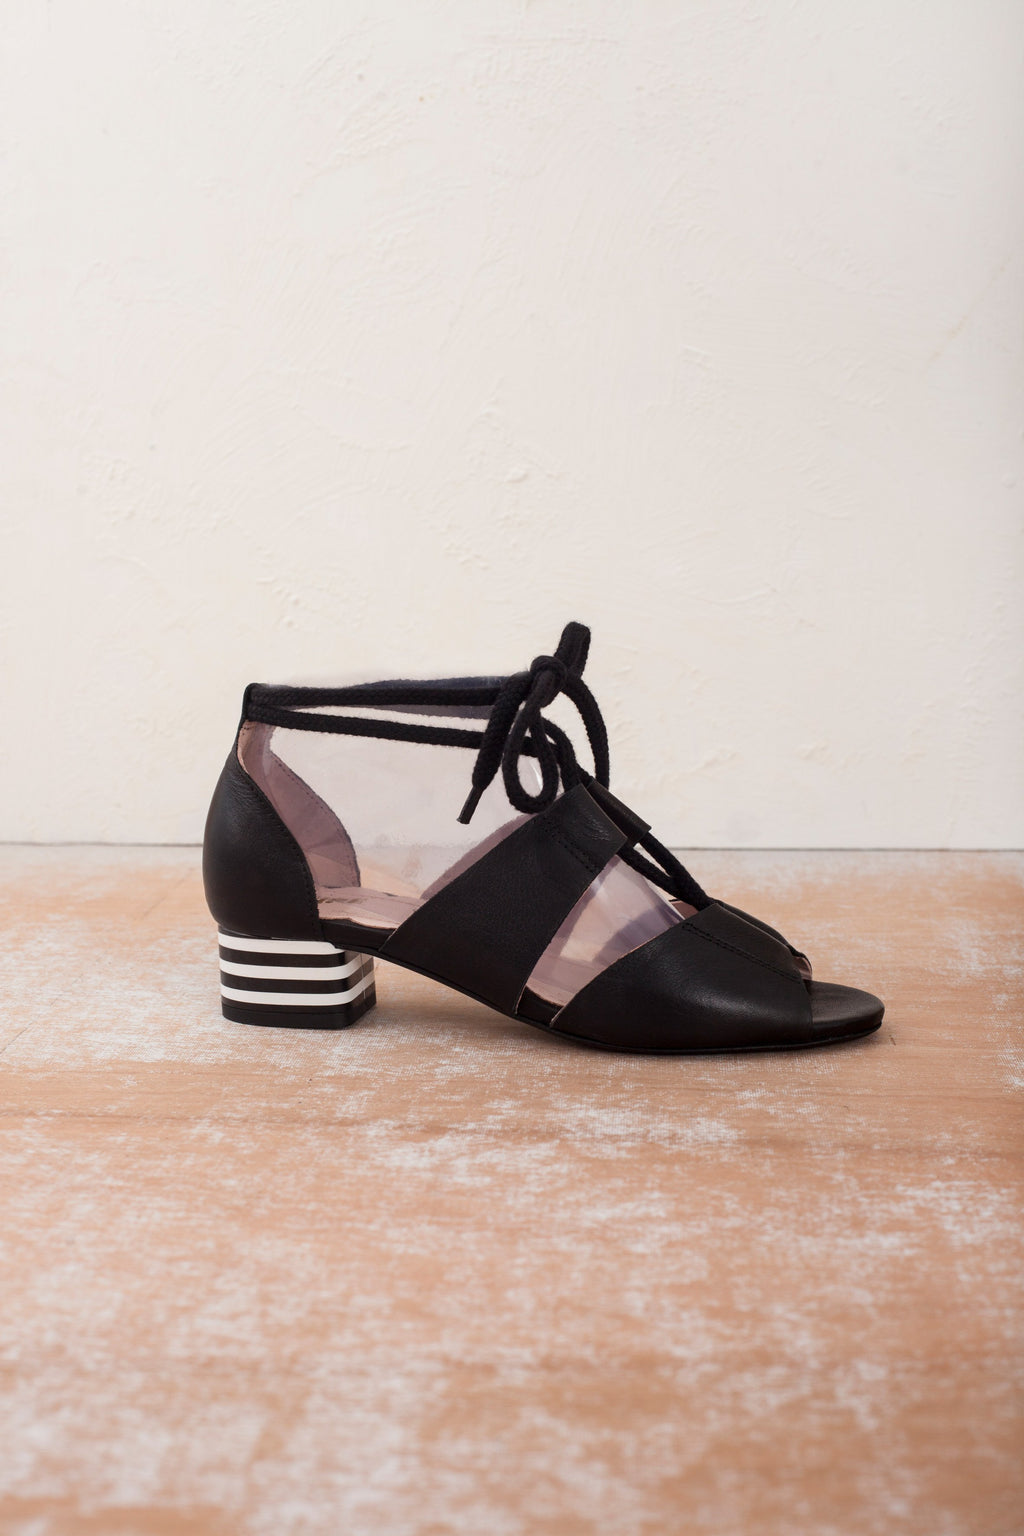 Mable black leather sandal with striped feature heel and cotton cord ties. By Miss L Fire